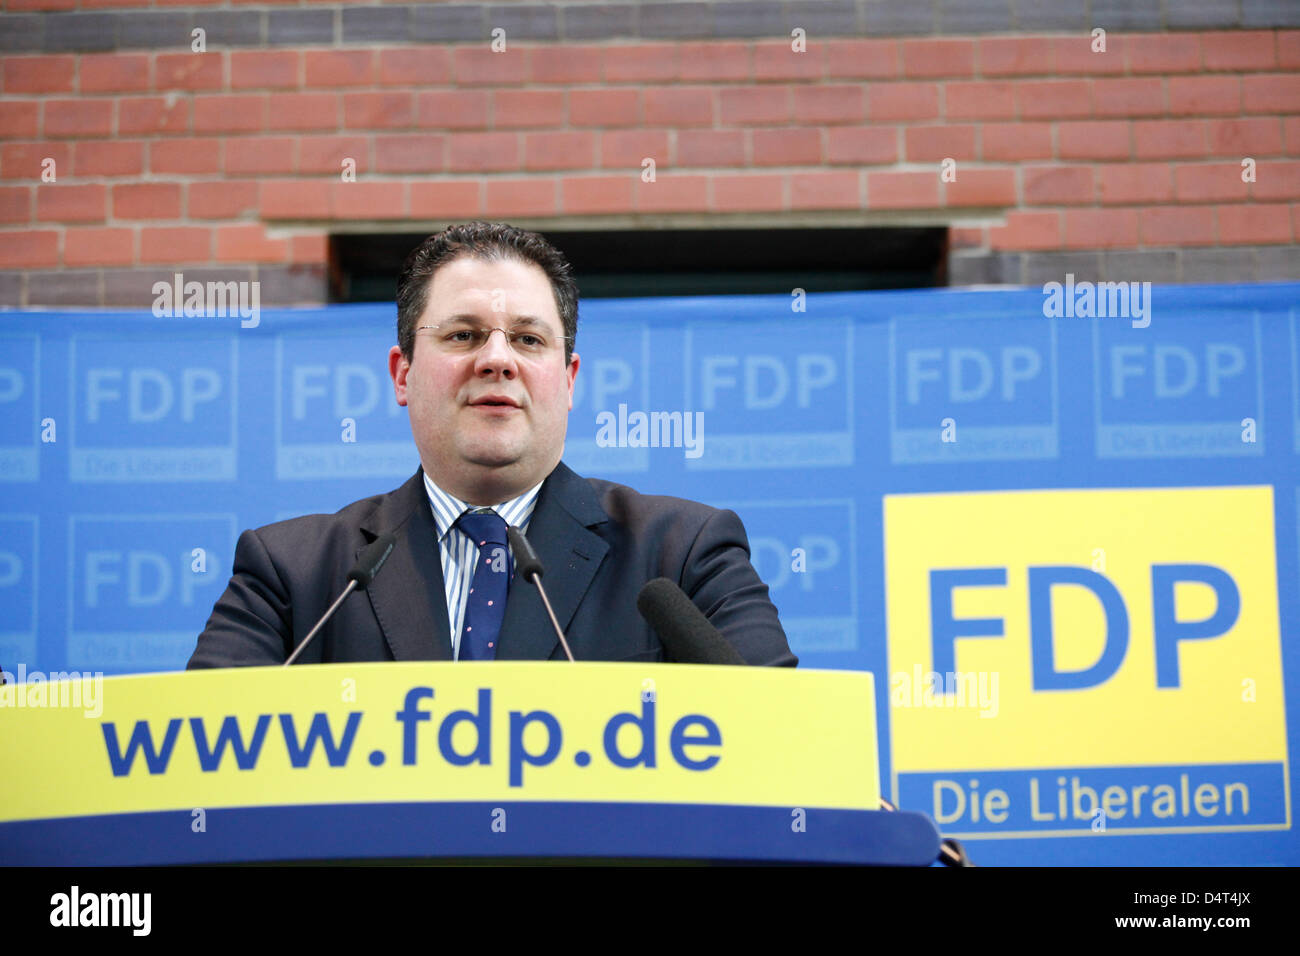 FDP-General secretary Patrick Döring  during a press conference.Berlin, 18. Maerz 2013. Pressekonferenz der FDP Stock Photo